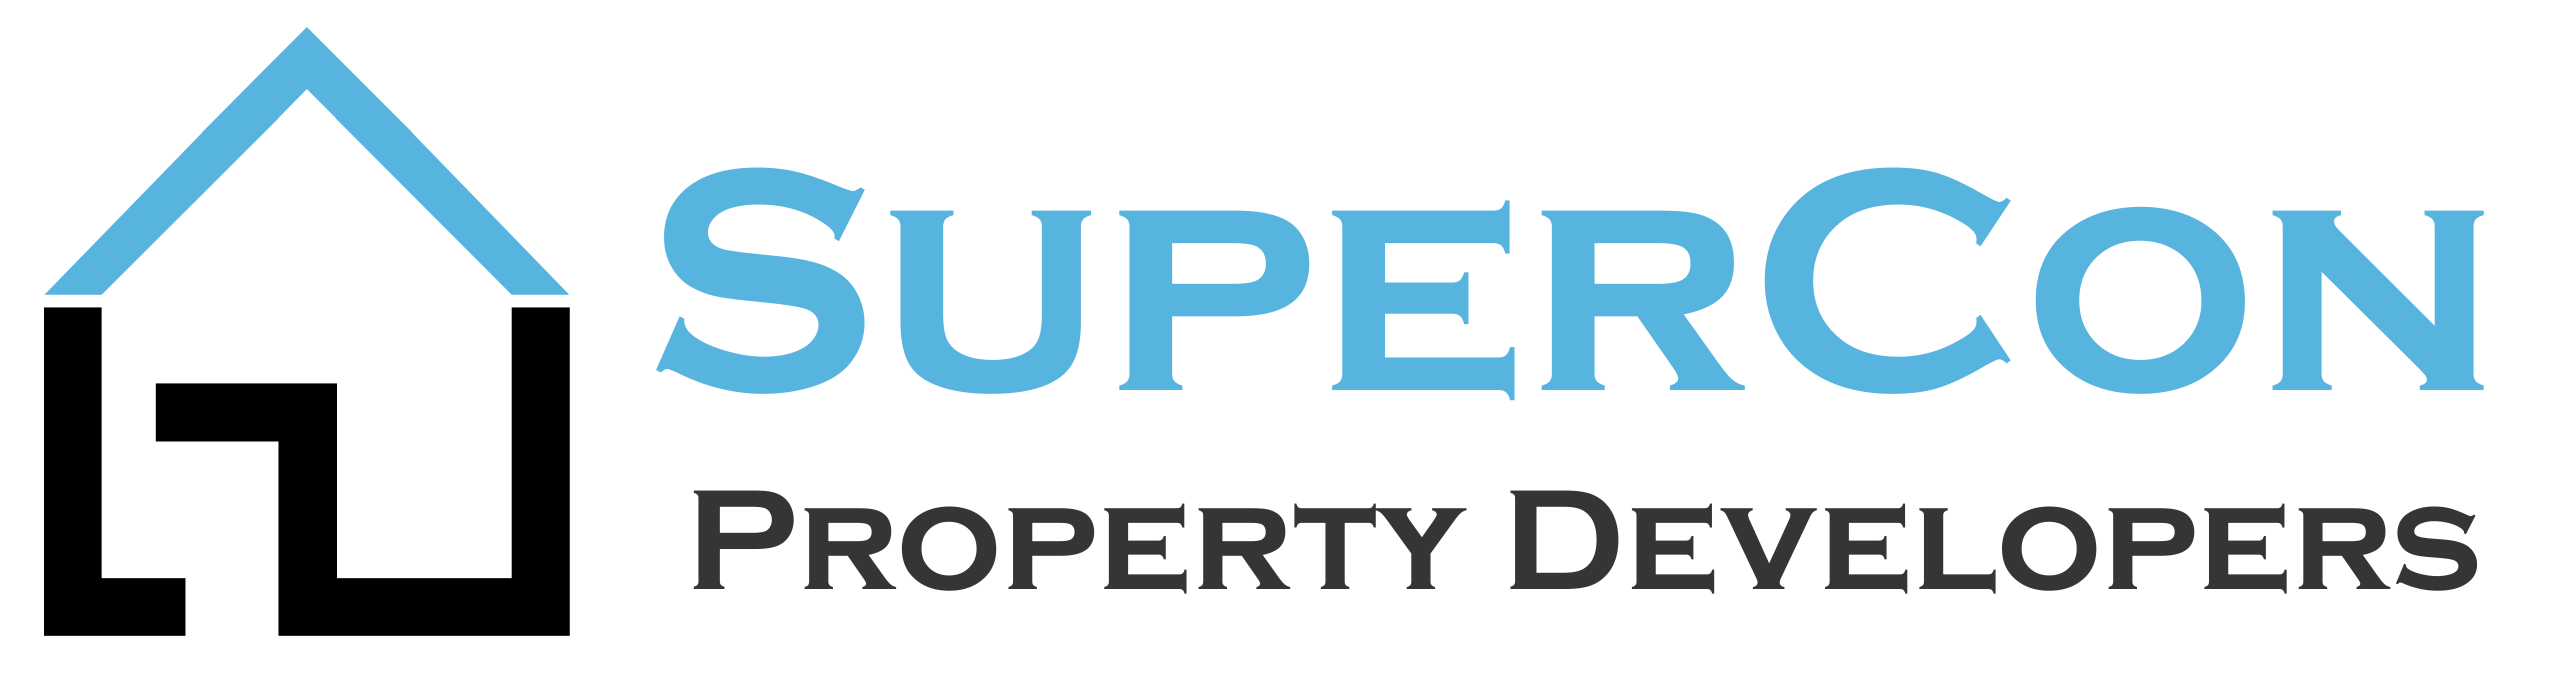 SuperCon Property Developers (Pty) Ltd